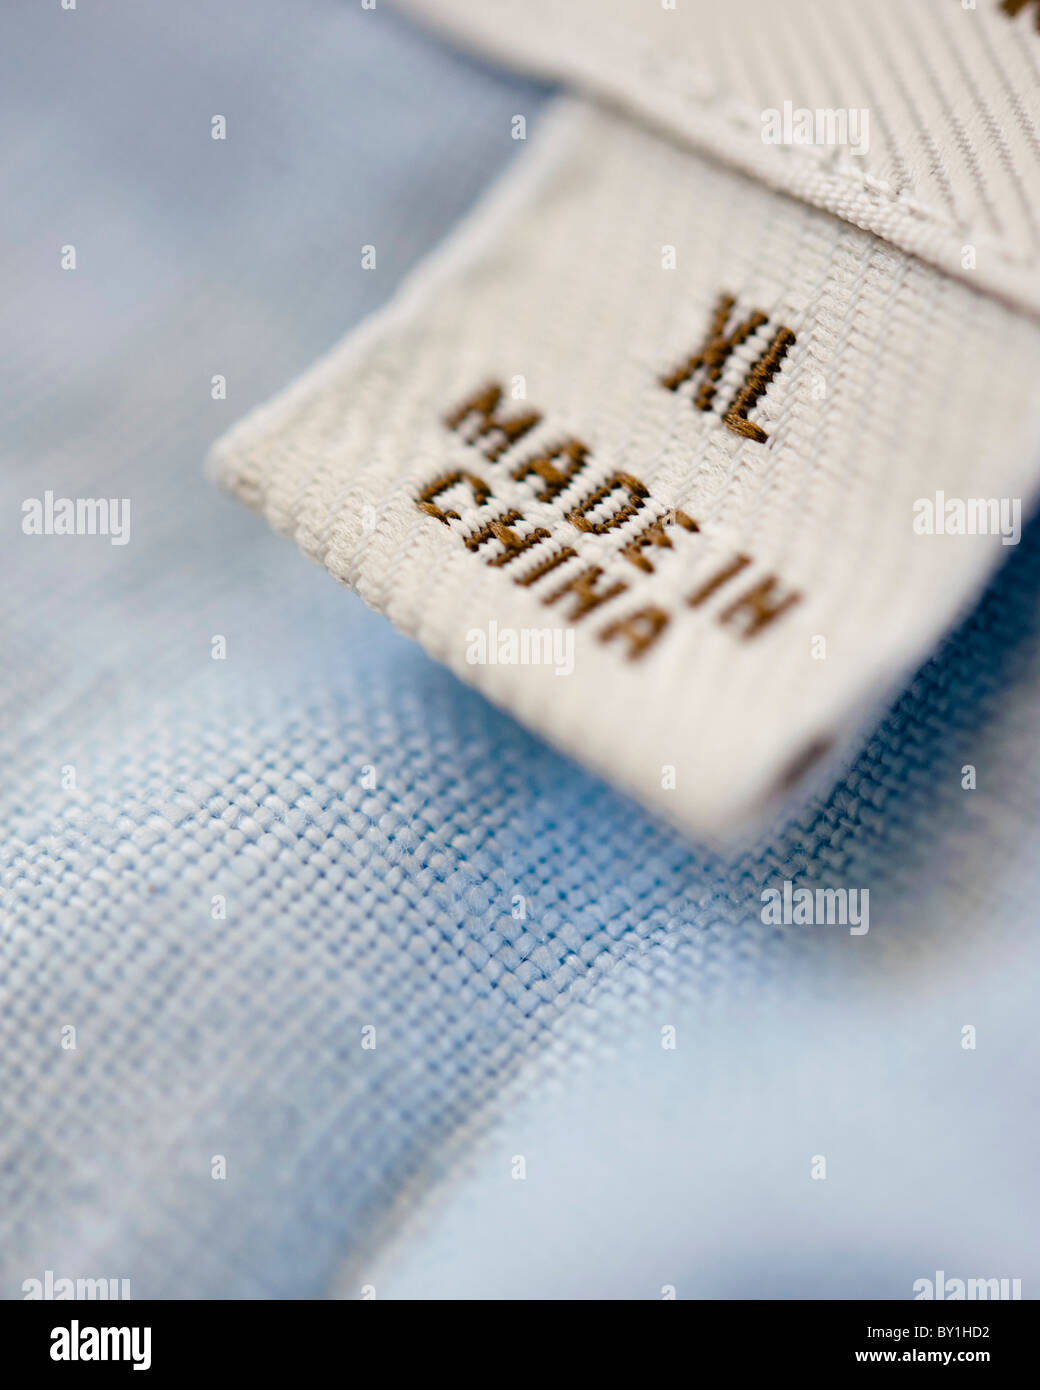 Detail of clothes label showing garment was Made in China - Stock Image